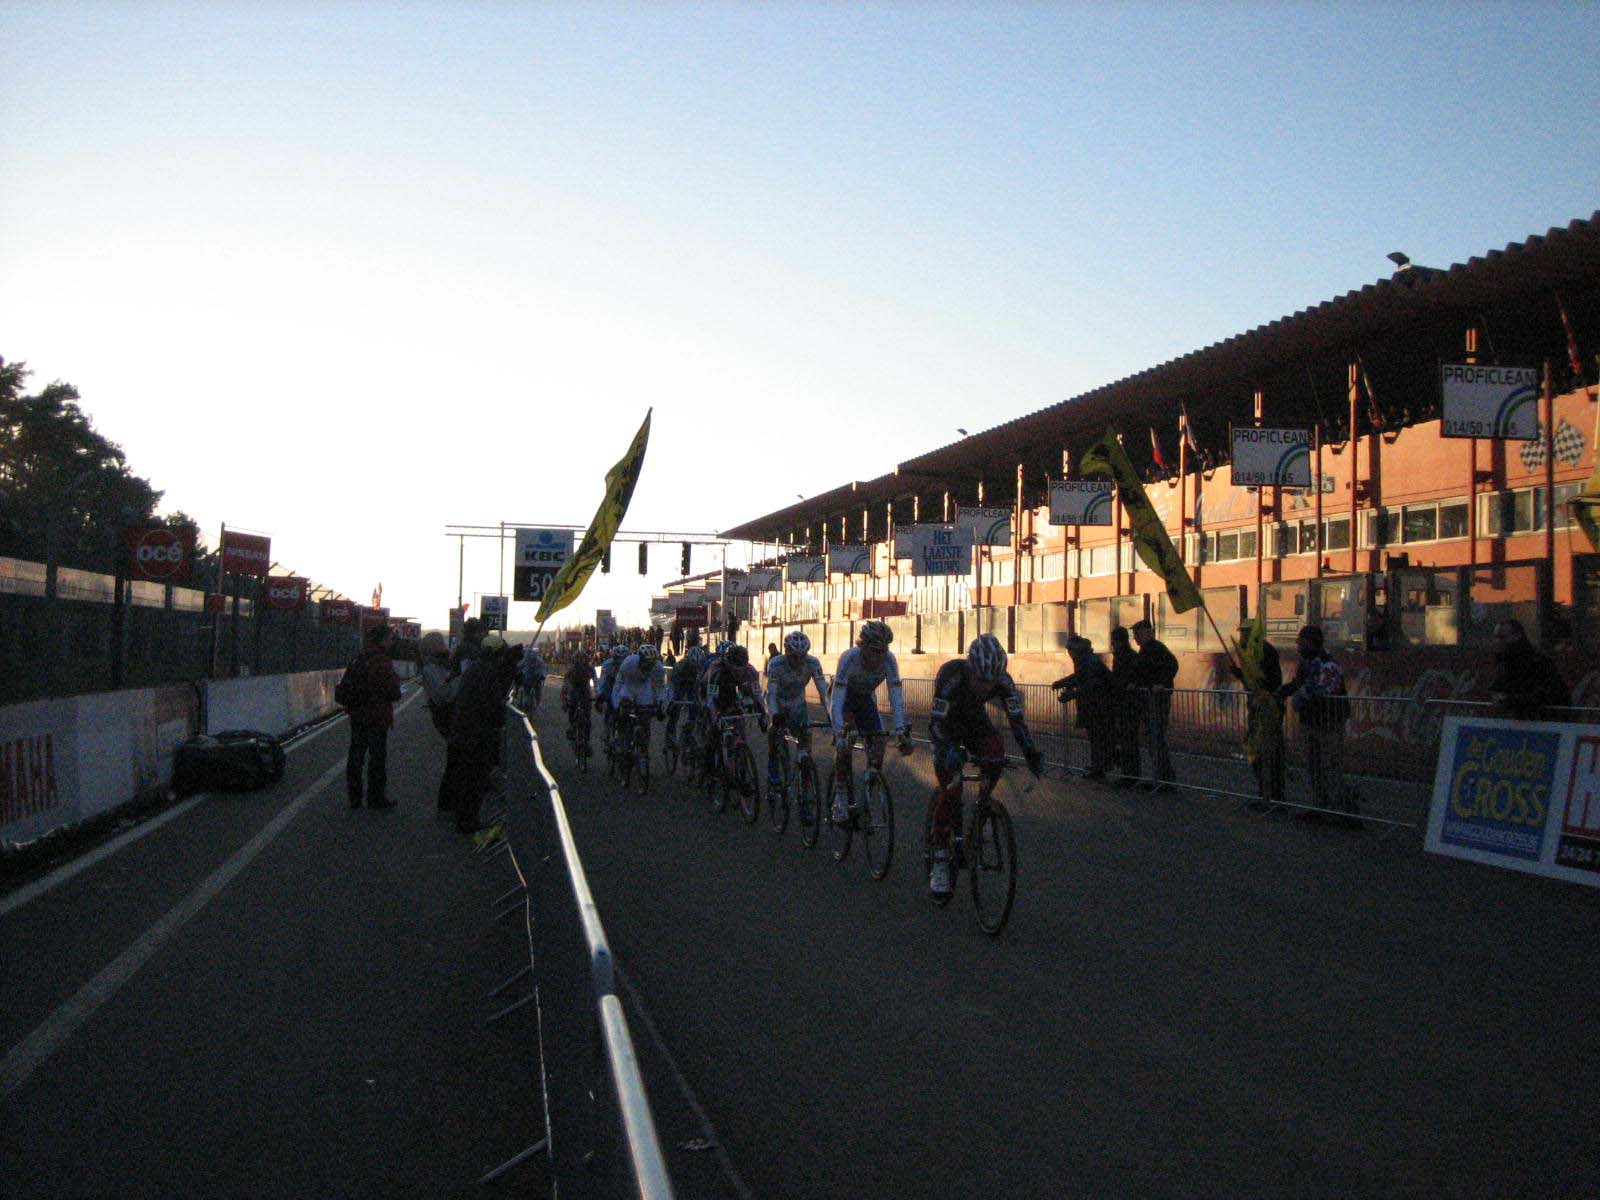 Chase group behind the leaders at sunset.